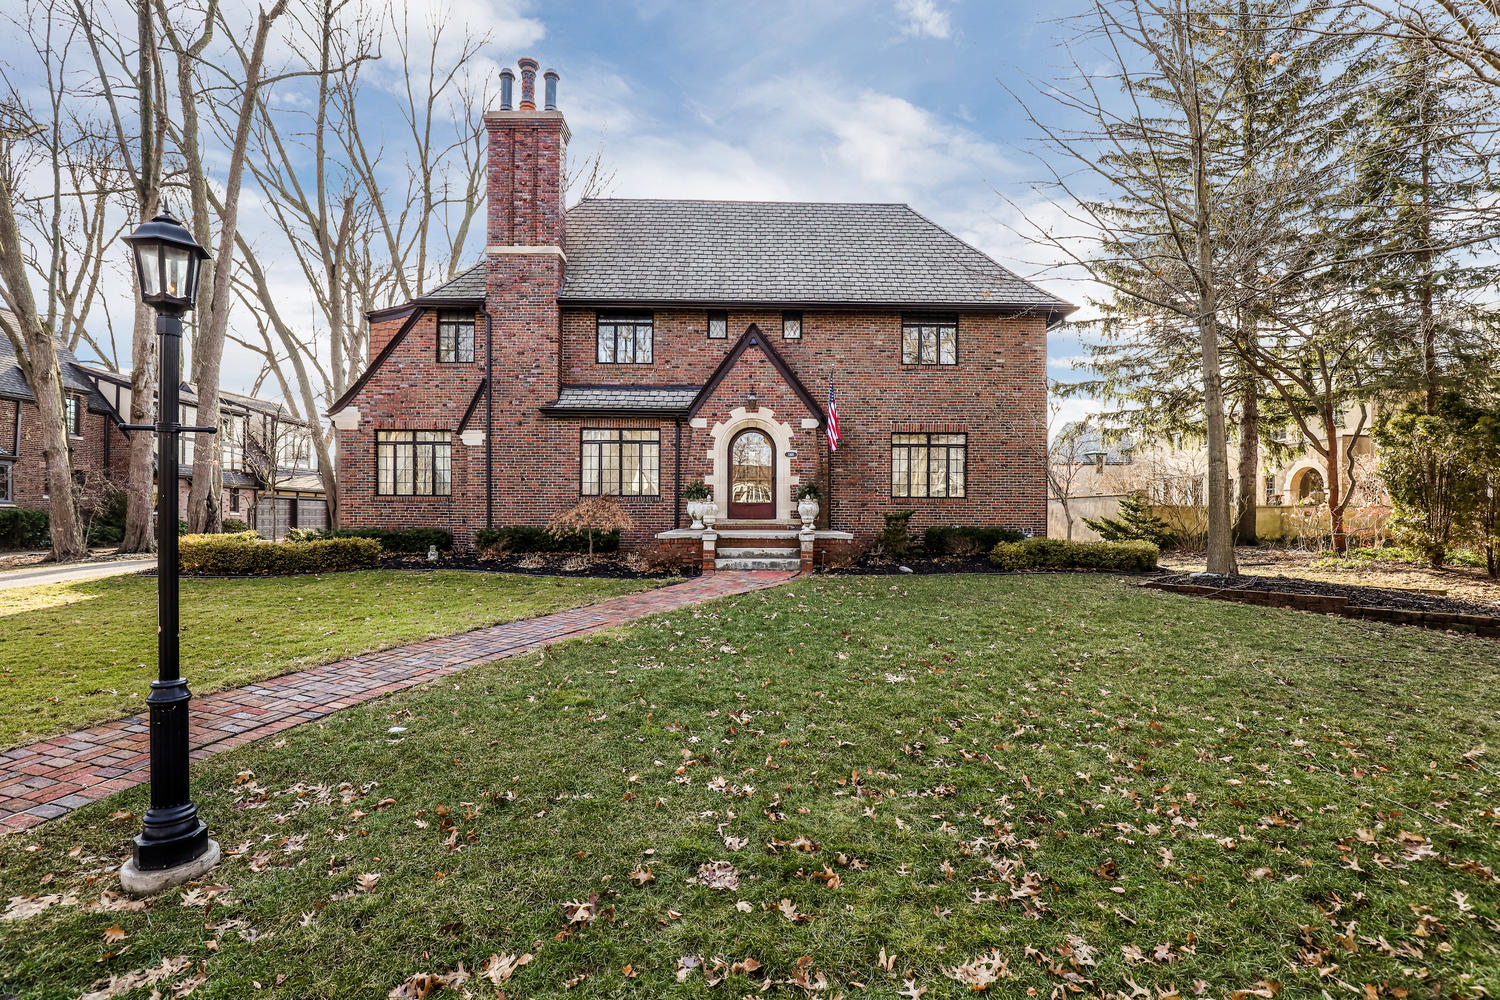 A two story brick house with an arched stone entryway and tall chimney. There's a large yard with leaves on the ground and a slightly curved brick walkway.